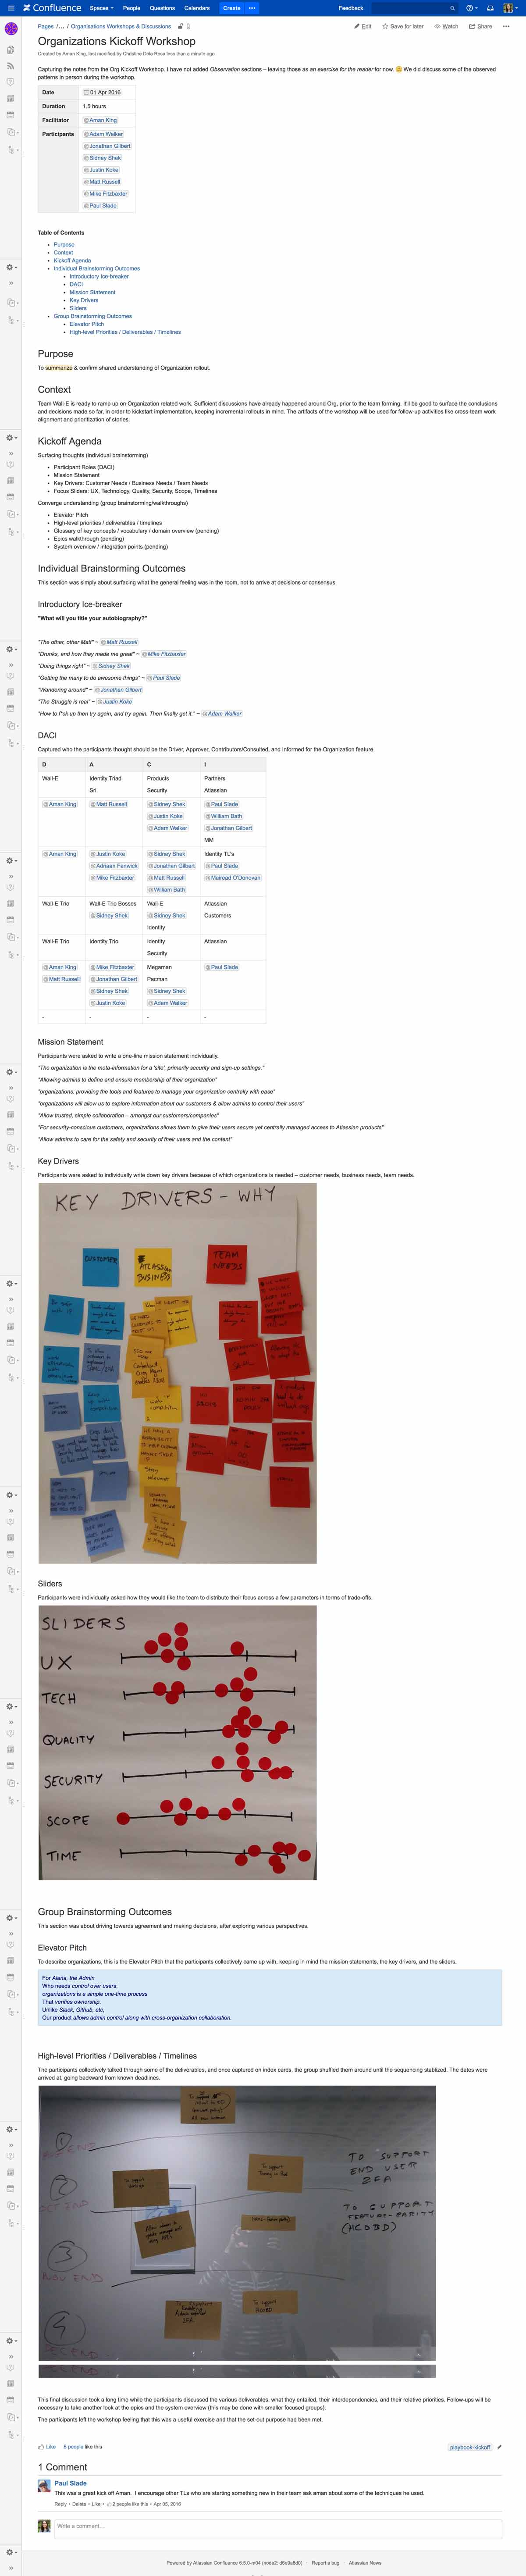 Project Kickoff Meetings: Steps and Example Agenda